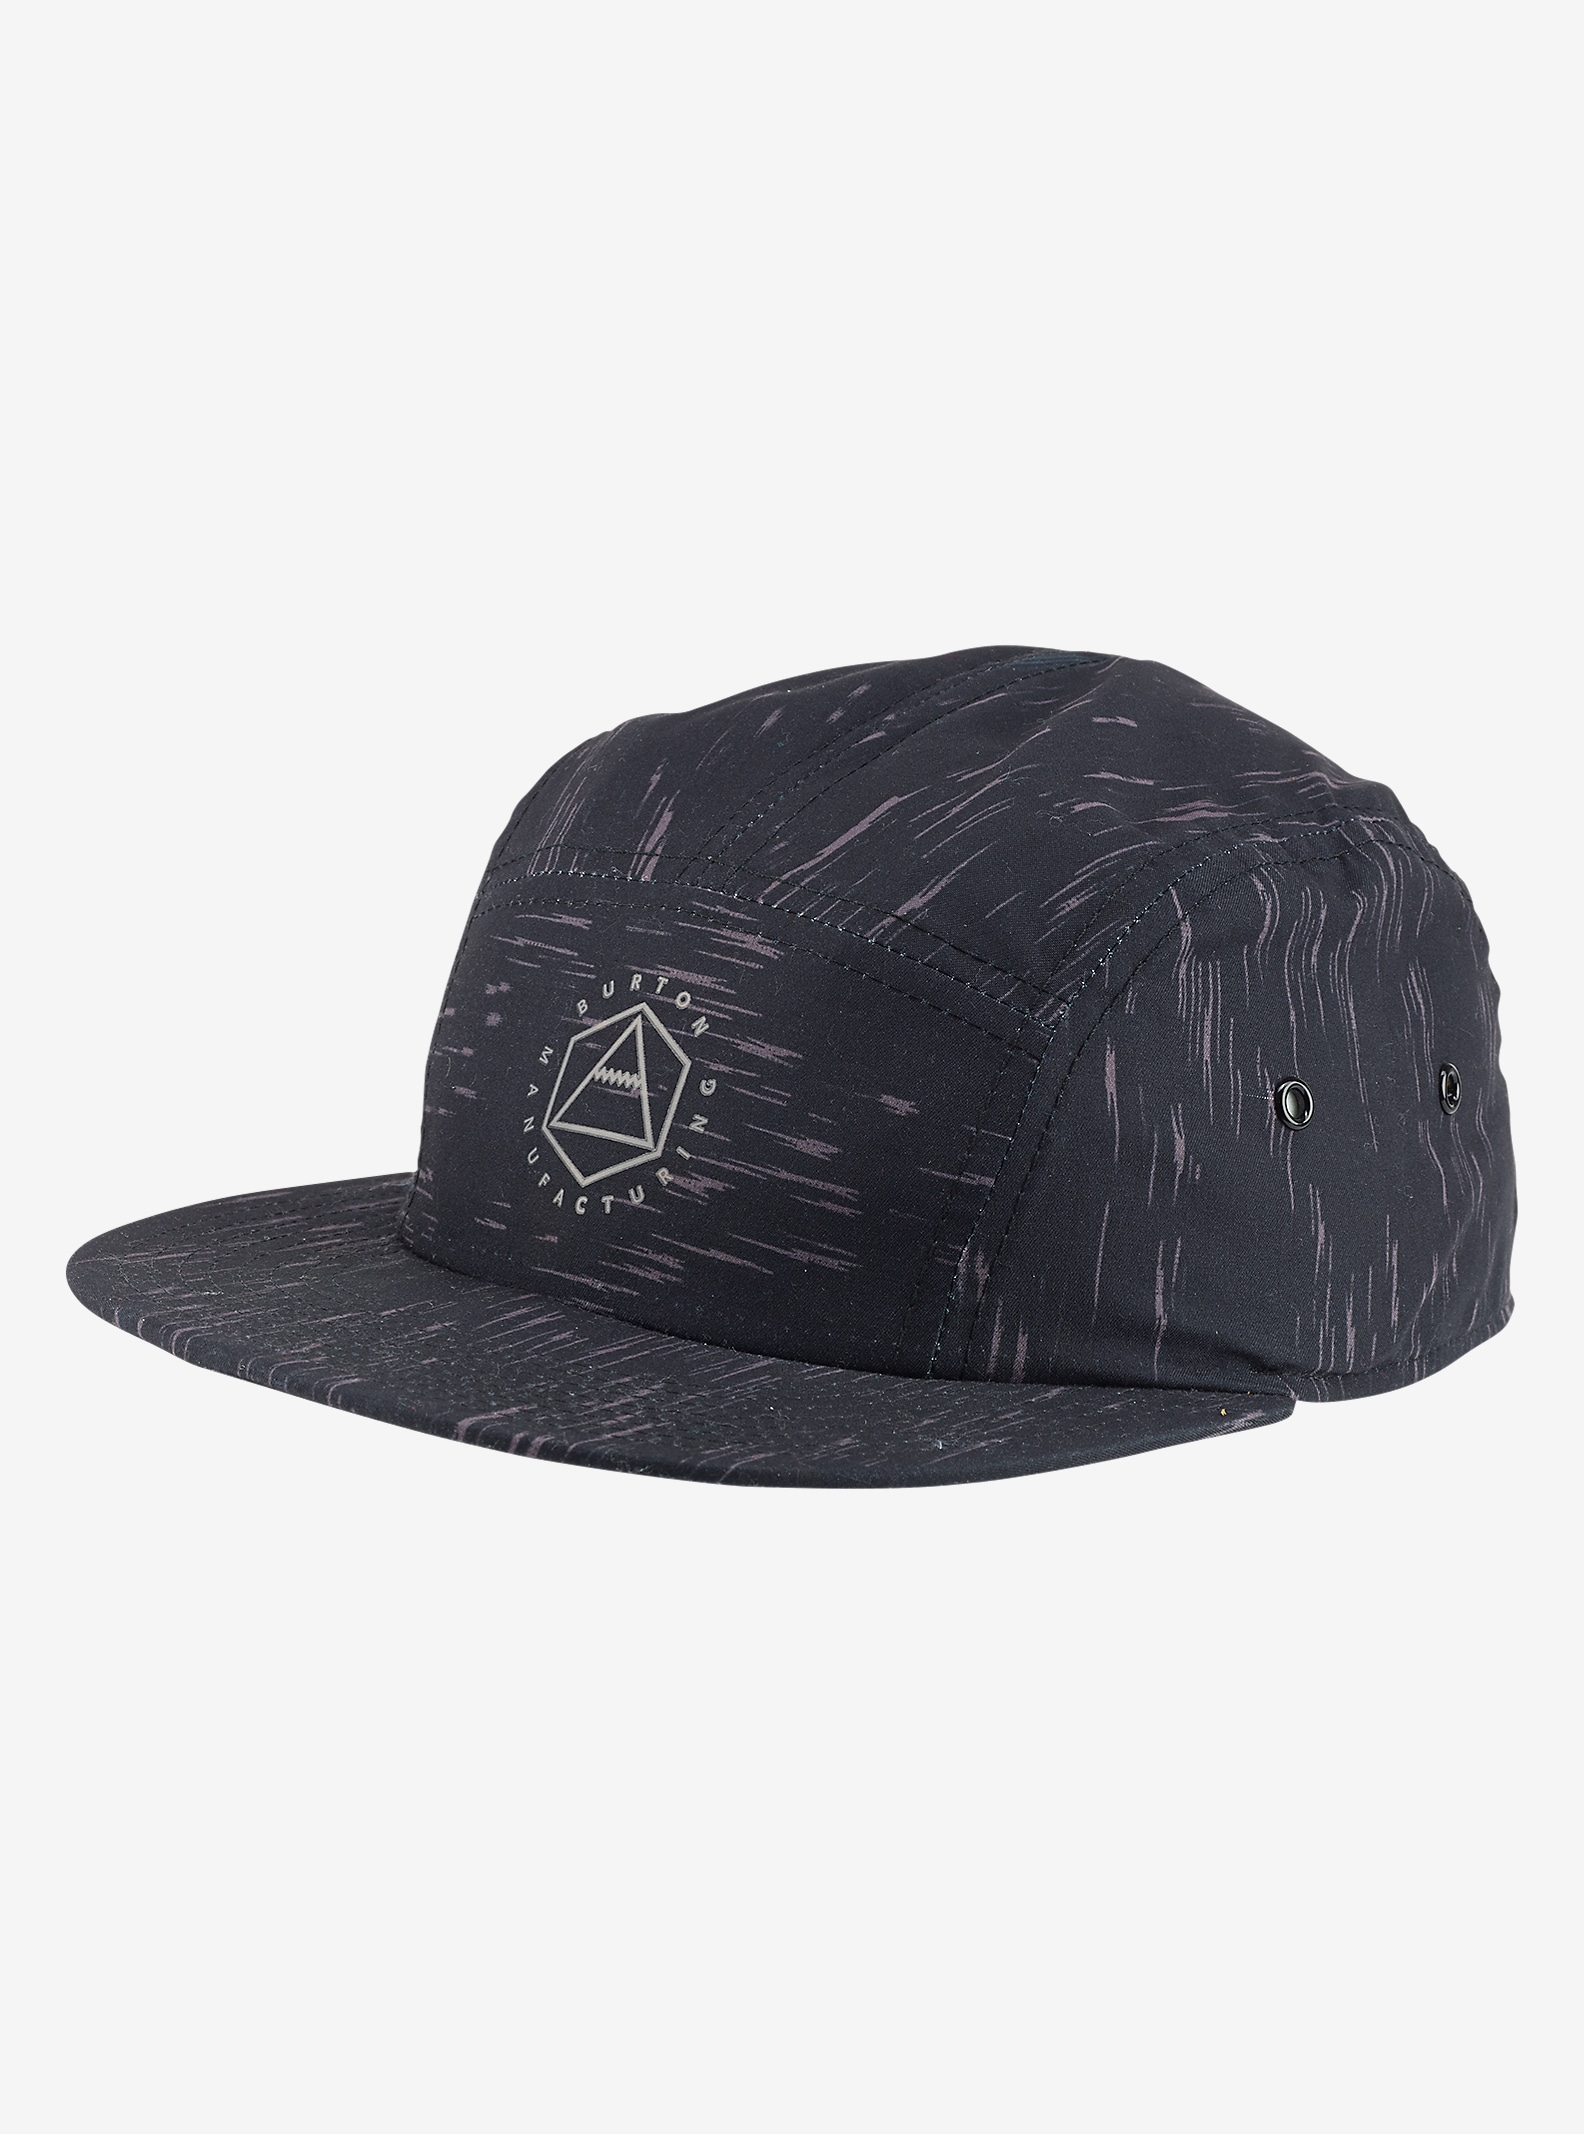 Burton Rainfly Hat angezeigt in True Black Rain